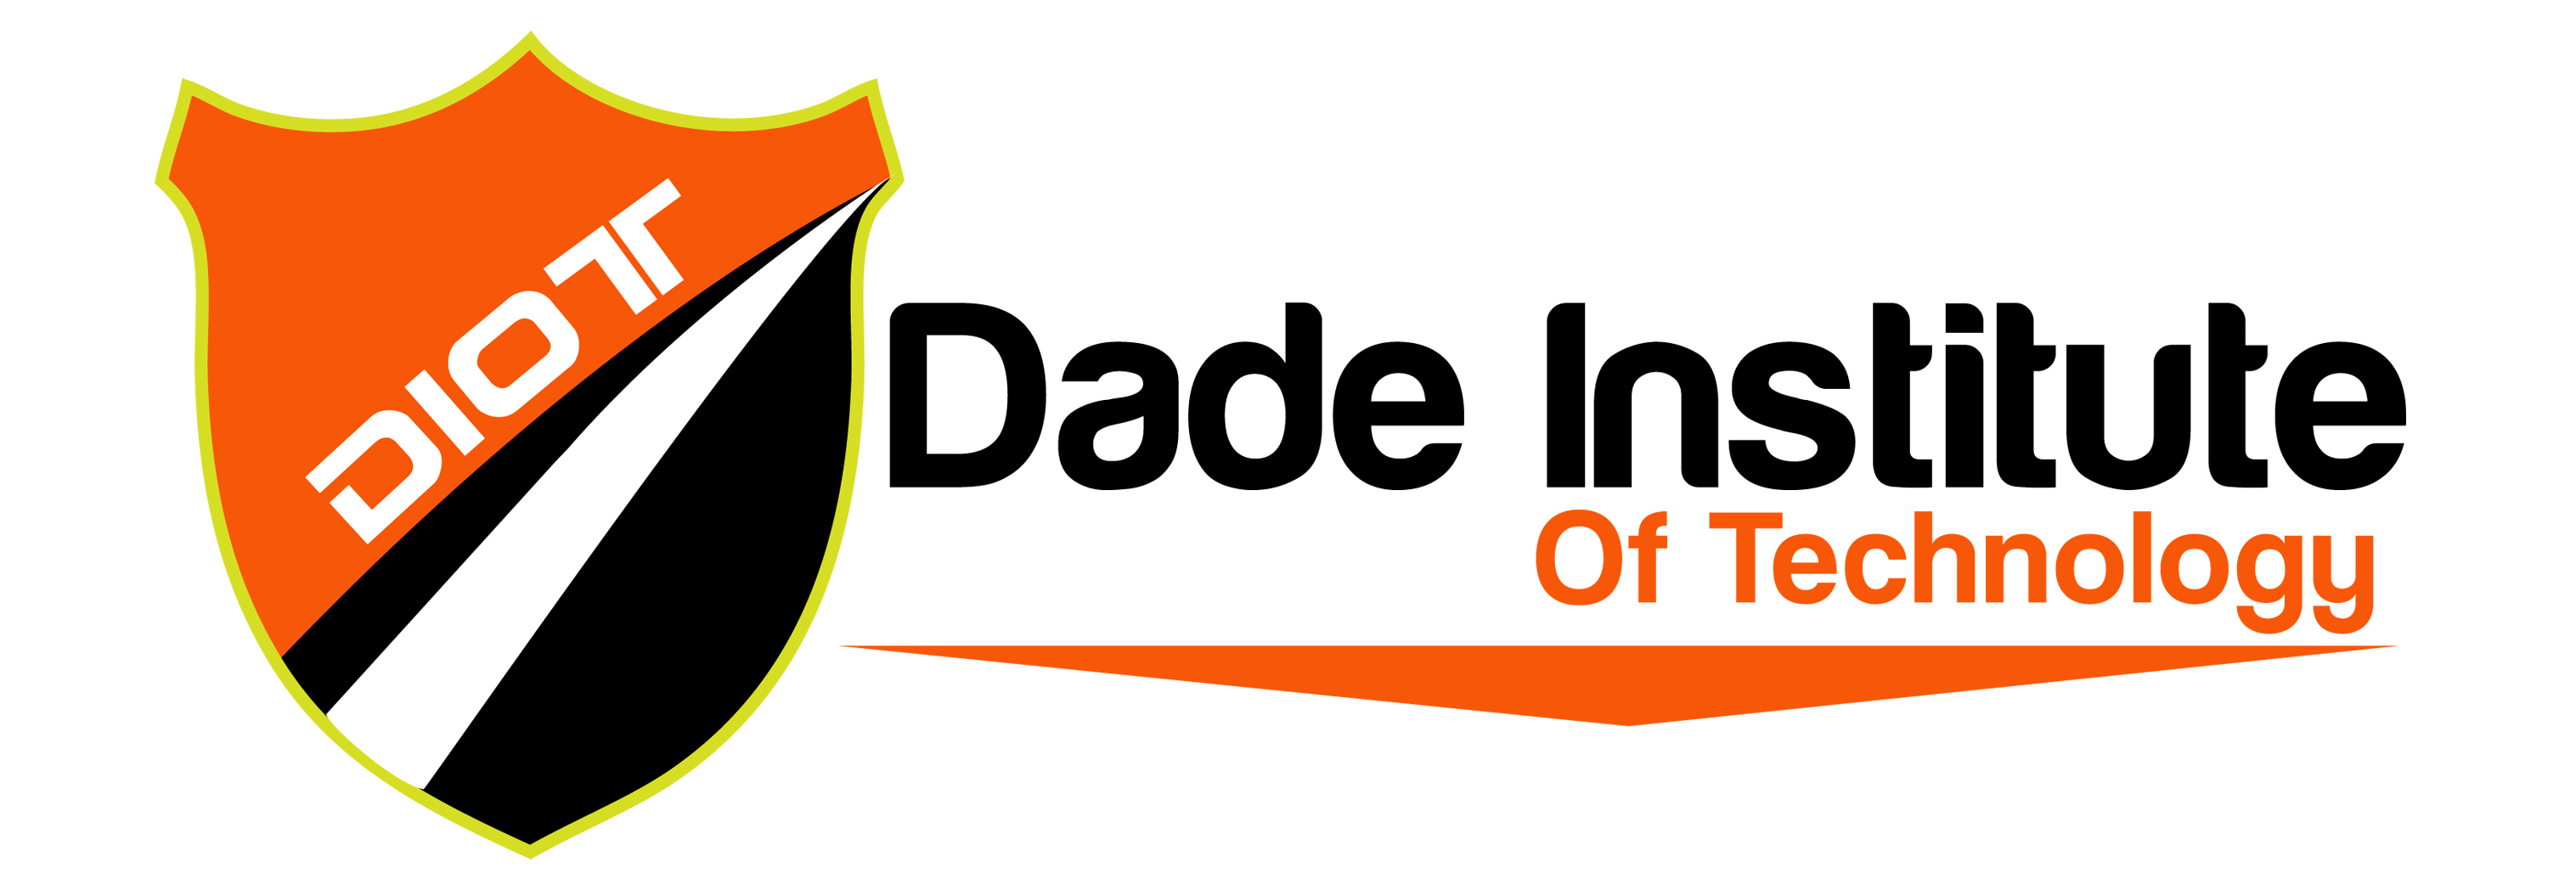 Dade Institute of Technology